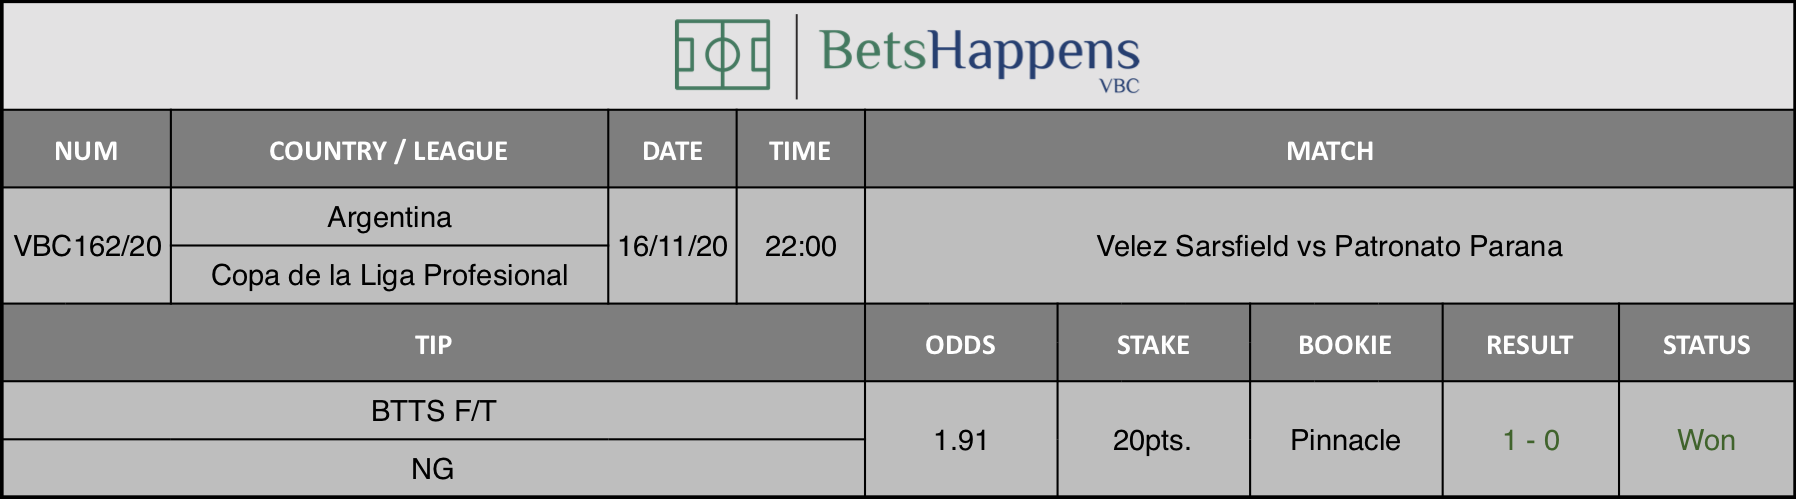 Results of our tip for the Velez Sarsfield vs Patronato Parana match where BTTS F/T  GG is recommended.